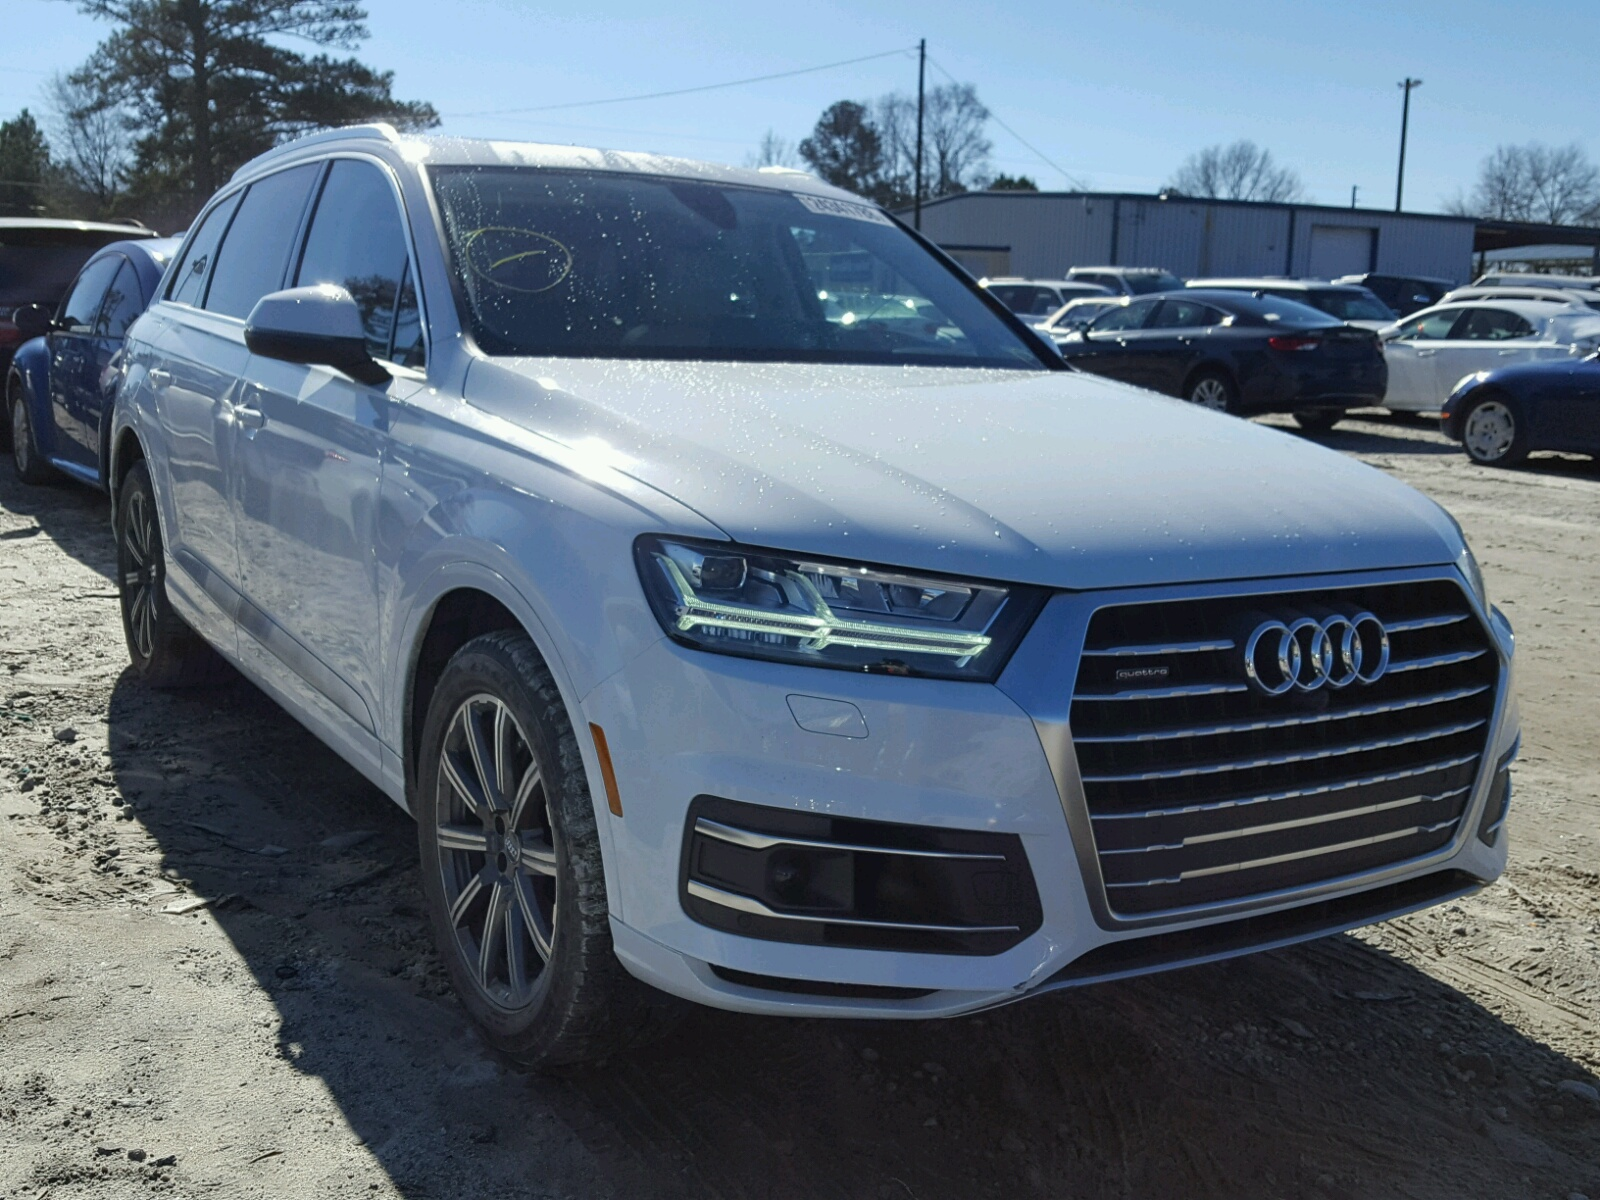 Auto Auction Ended on VIN: WAUML44E55N001433 2005 AUDI A8 in KY - LOUISVILLE